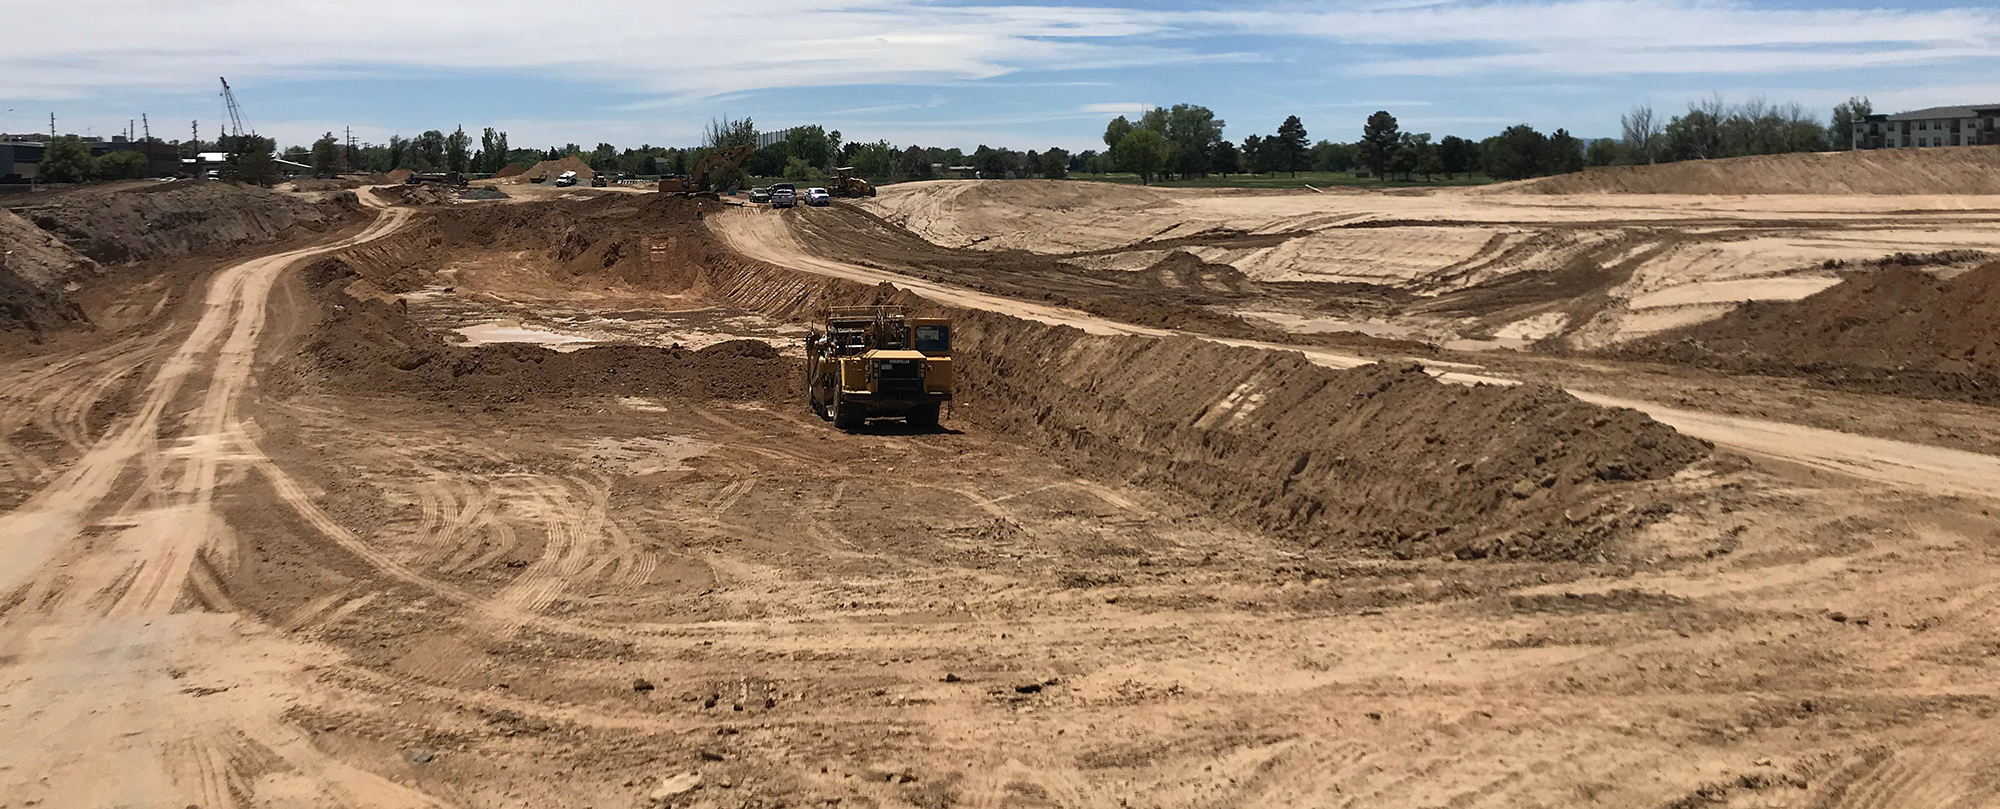 dirt construction zone with golf course in background